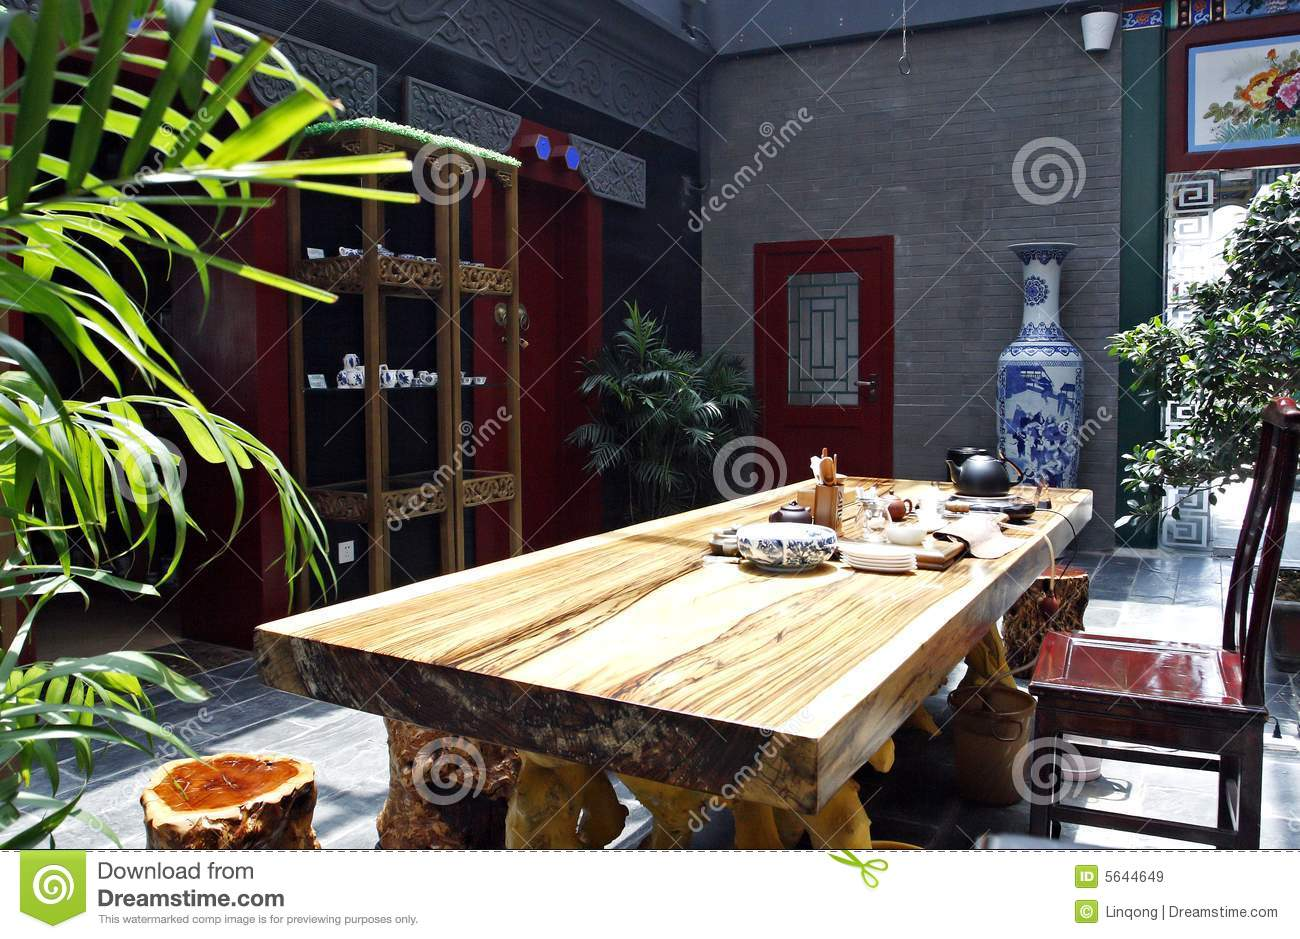 Ancient teahouse of China. stock image. Image of table - 5644649 on grain silo design, cast iron design, tea room, japanese design, african design, winery design, sidewalk design, construction design, southwestern design, travel agency design, pavilion design, tea houses in new jersey, hedge design, casino design, fusion design, asian design, international design, family design, sauna design, irish design,